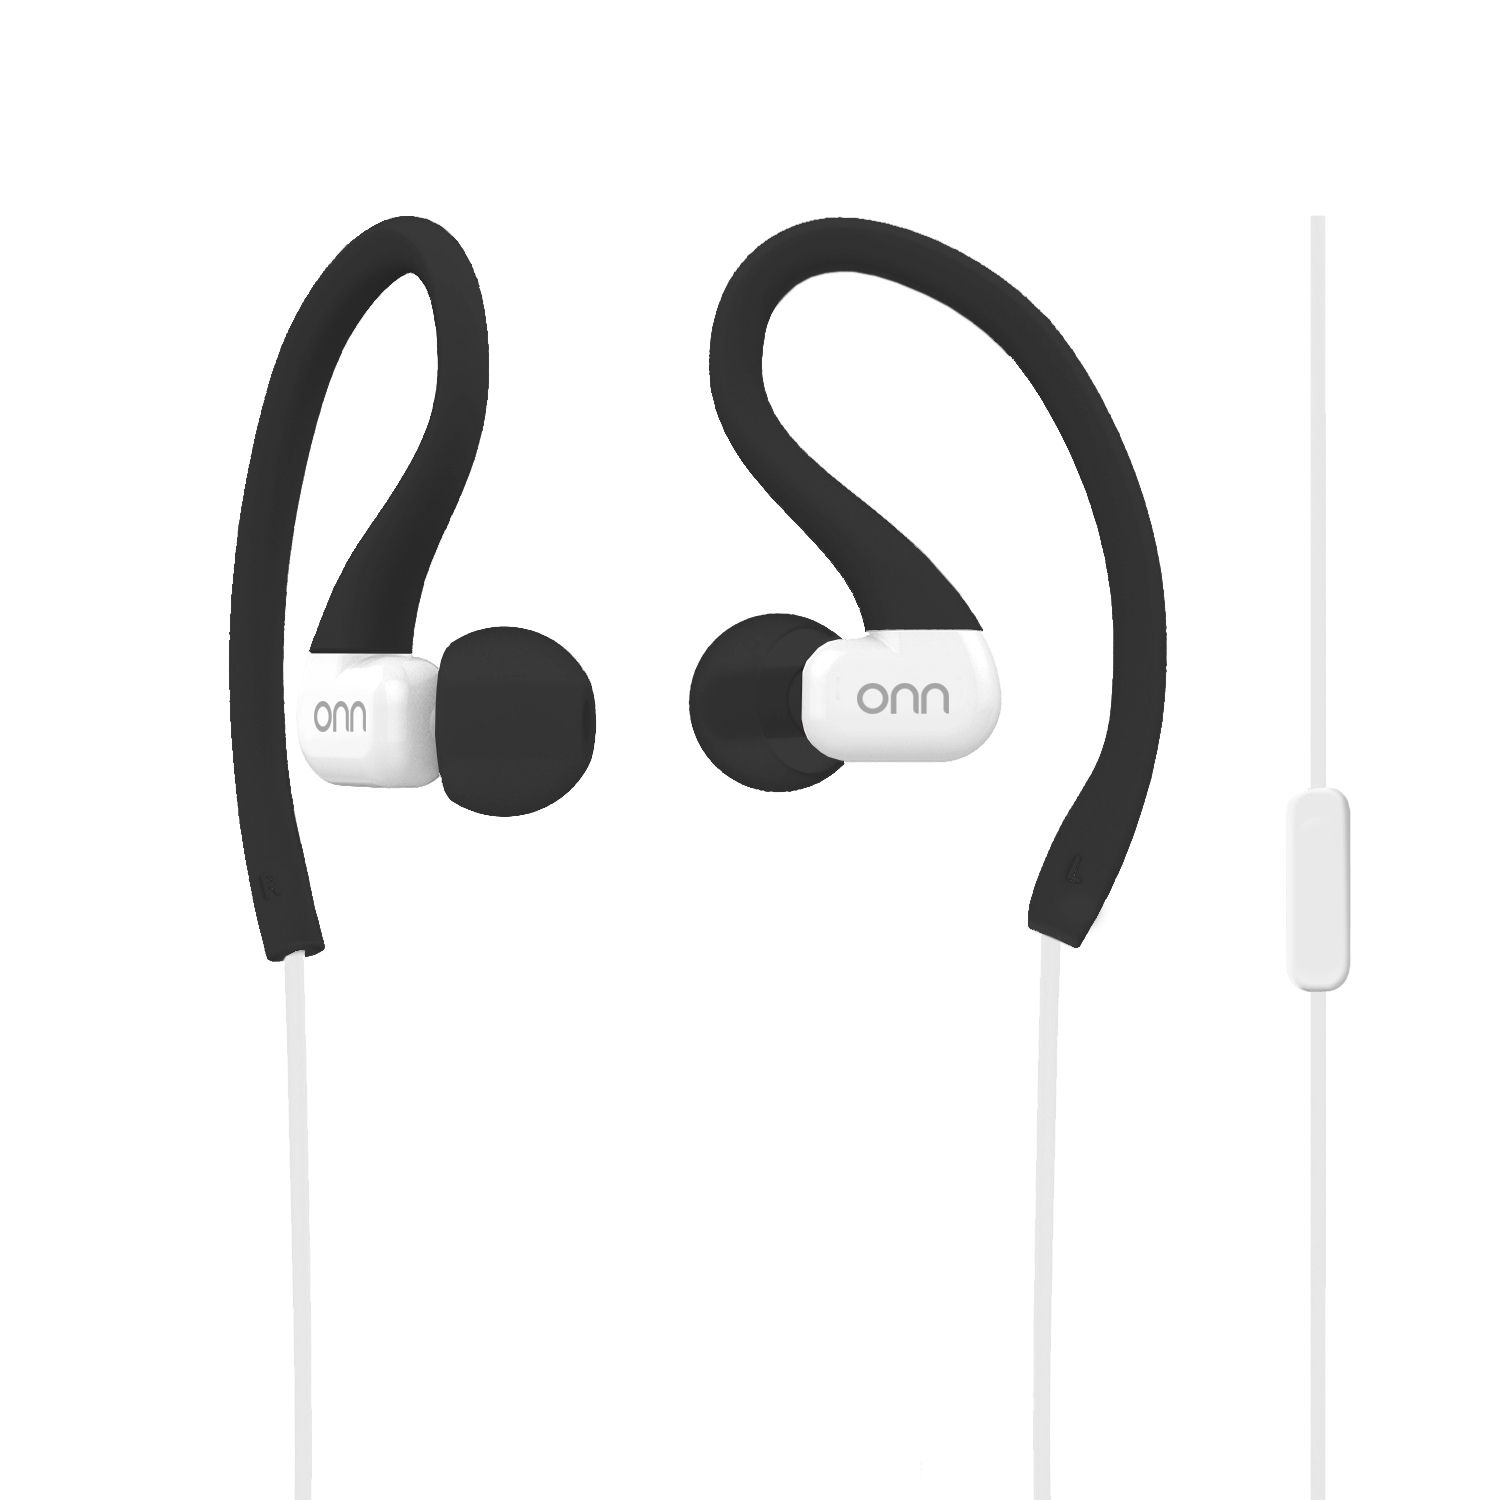 Onn by Walmart Sports Headphones - Black/grey